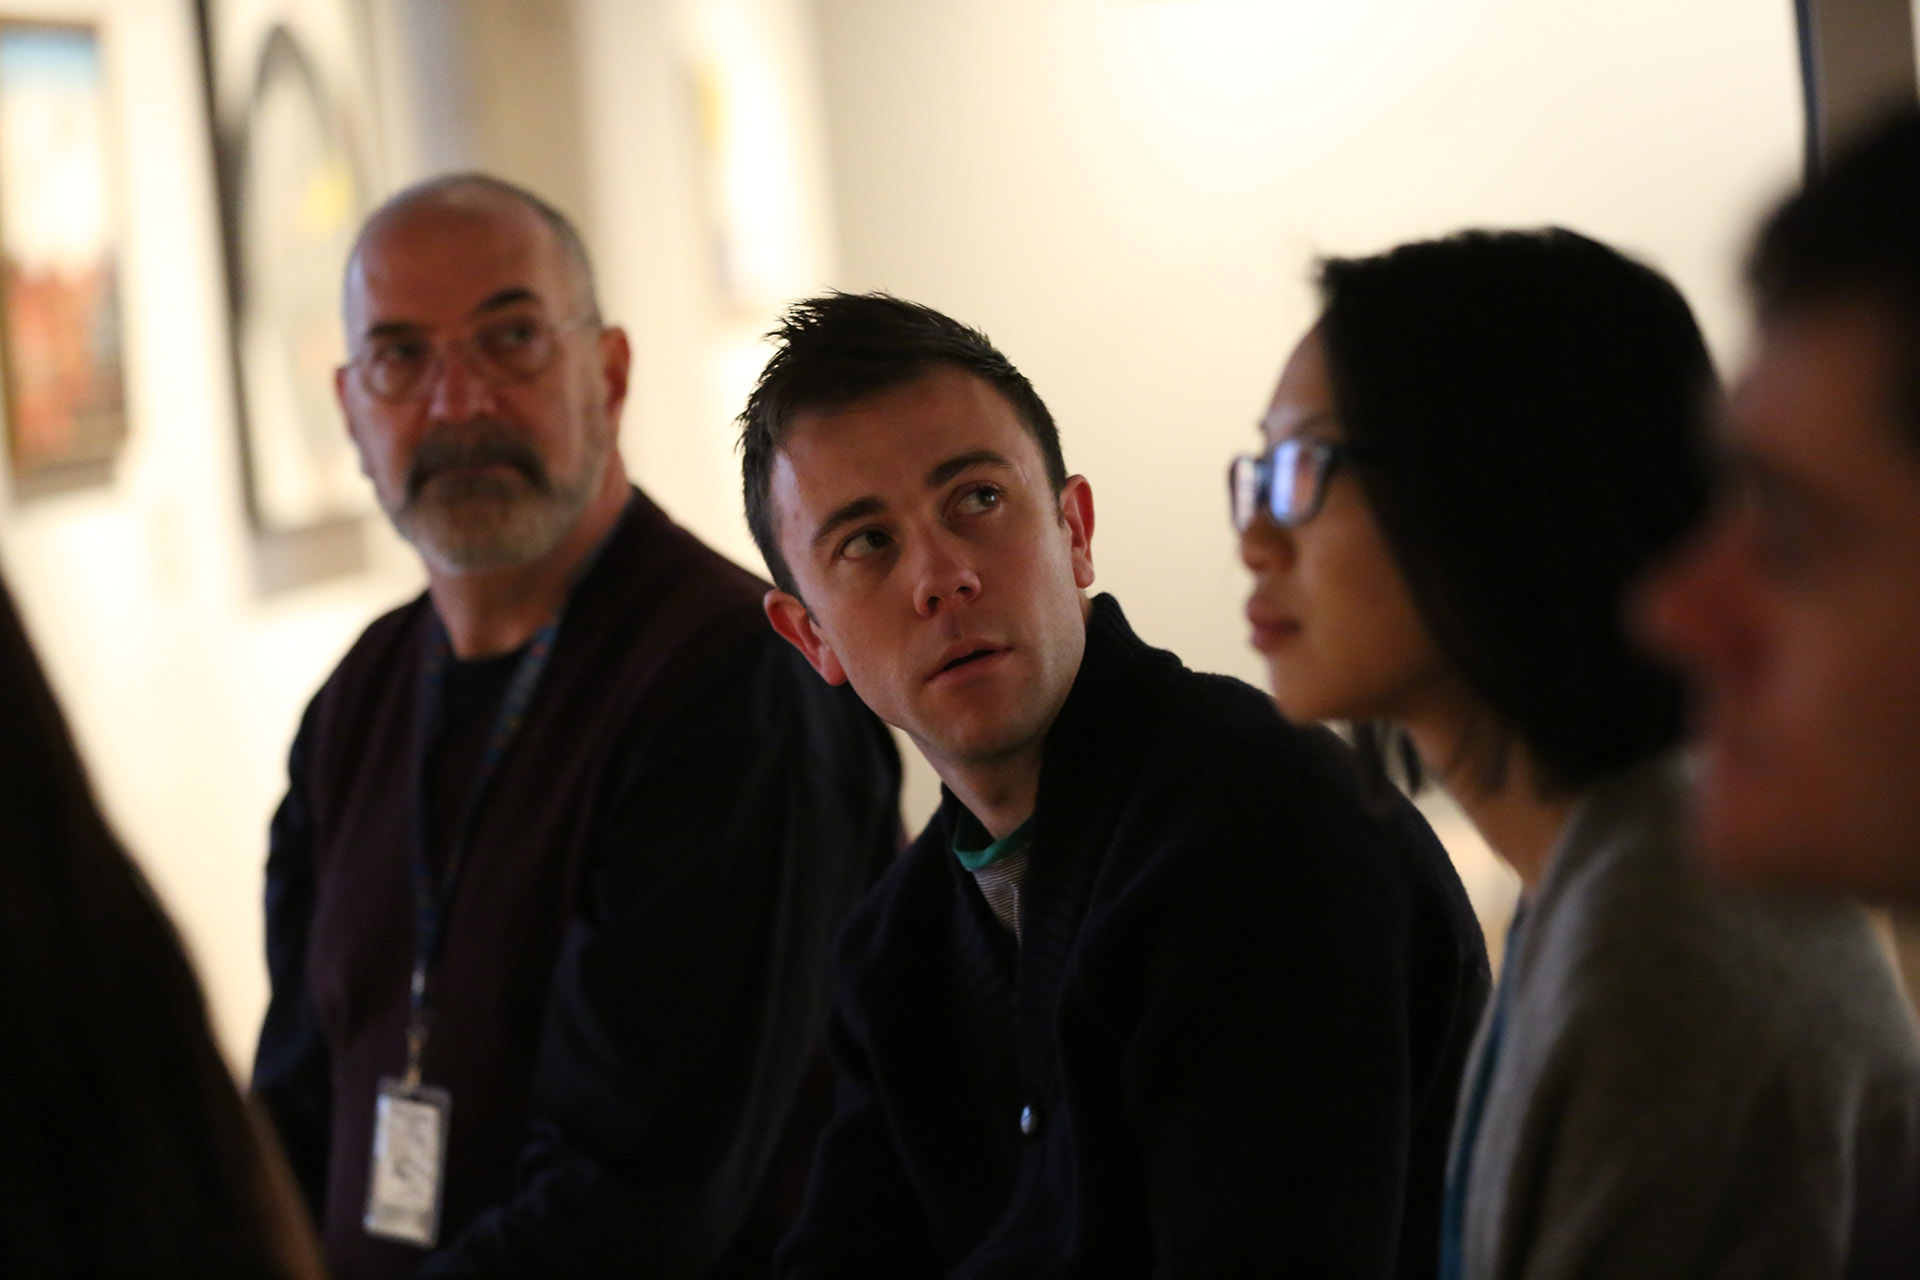 John Roberts (Sound Design Special Fellow), Hugh Farrell ('15), and Sally Shen (Theater Management, '15), Yale School of Drama, 2015. Photo by Joan Marcus.